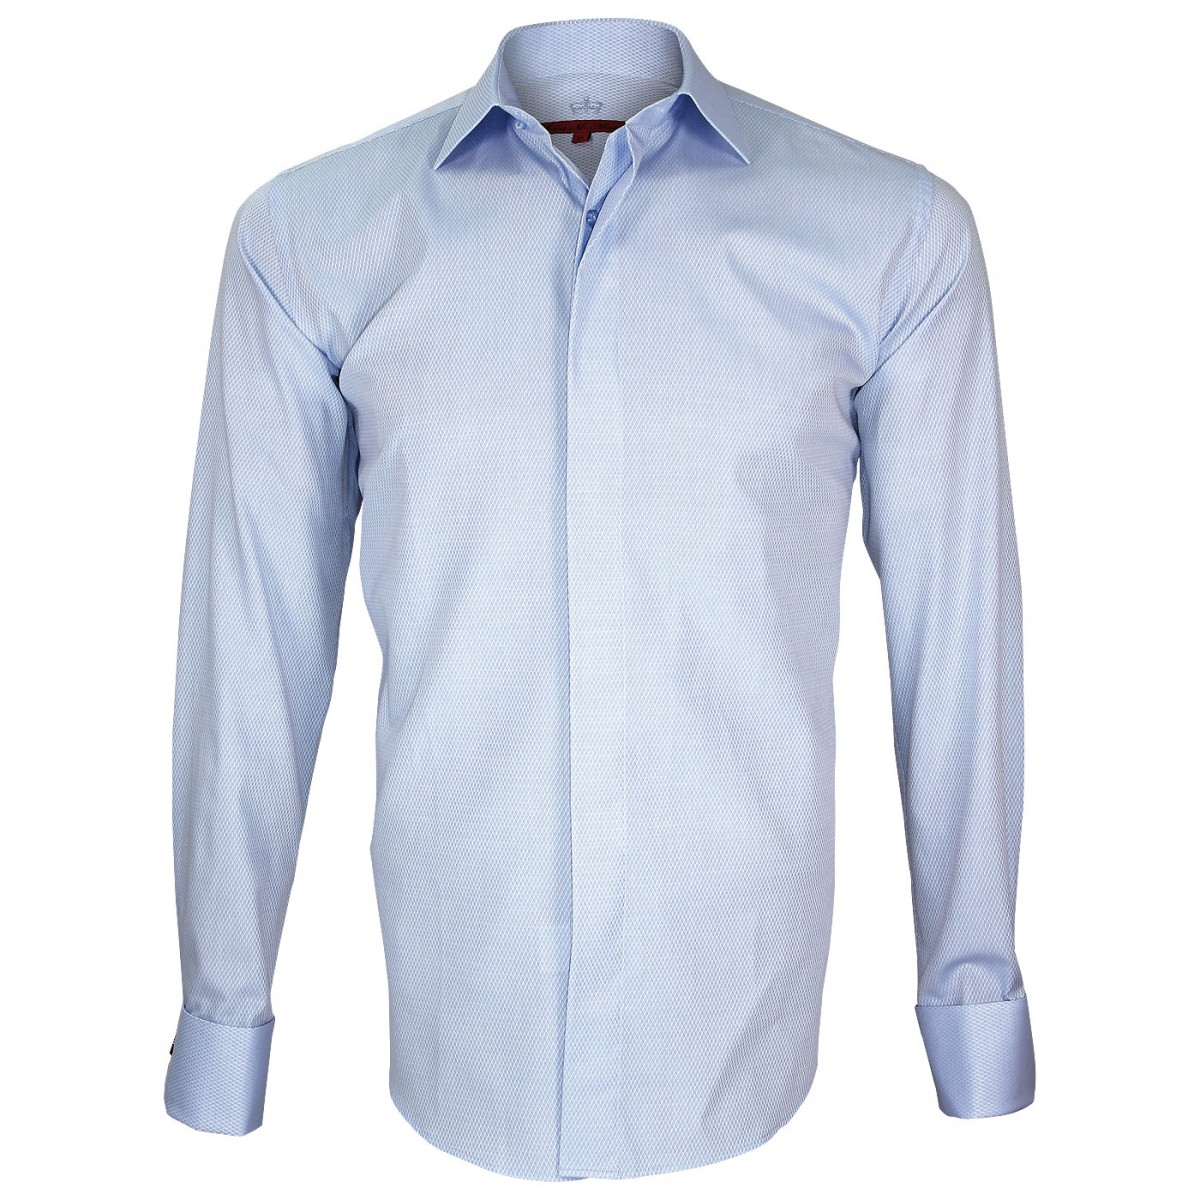 Two Ply Shirts shirt two ply 120/2 lord andrew mc allister q6am2. loading zoom AVCMPWG